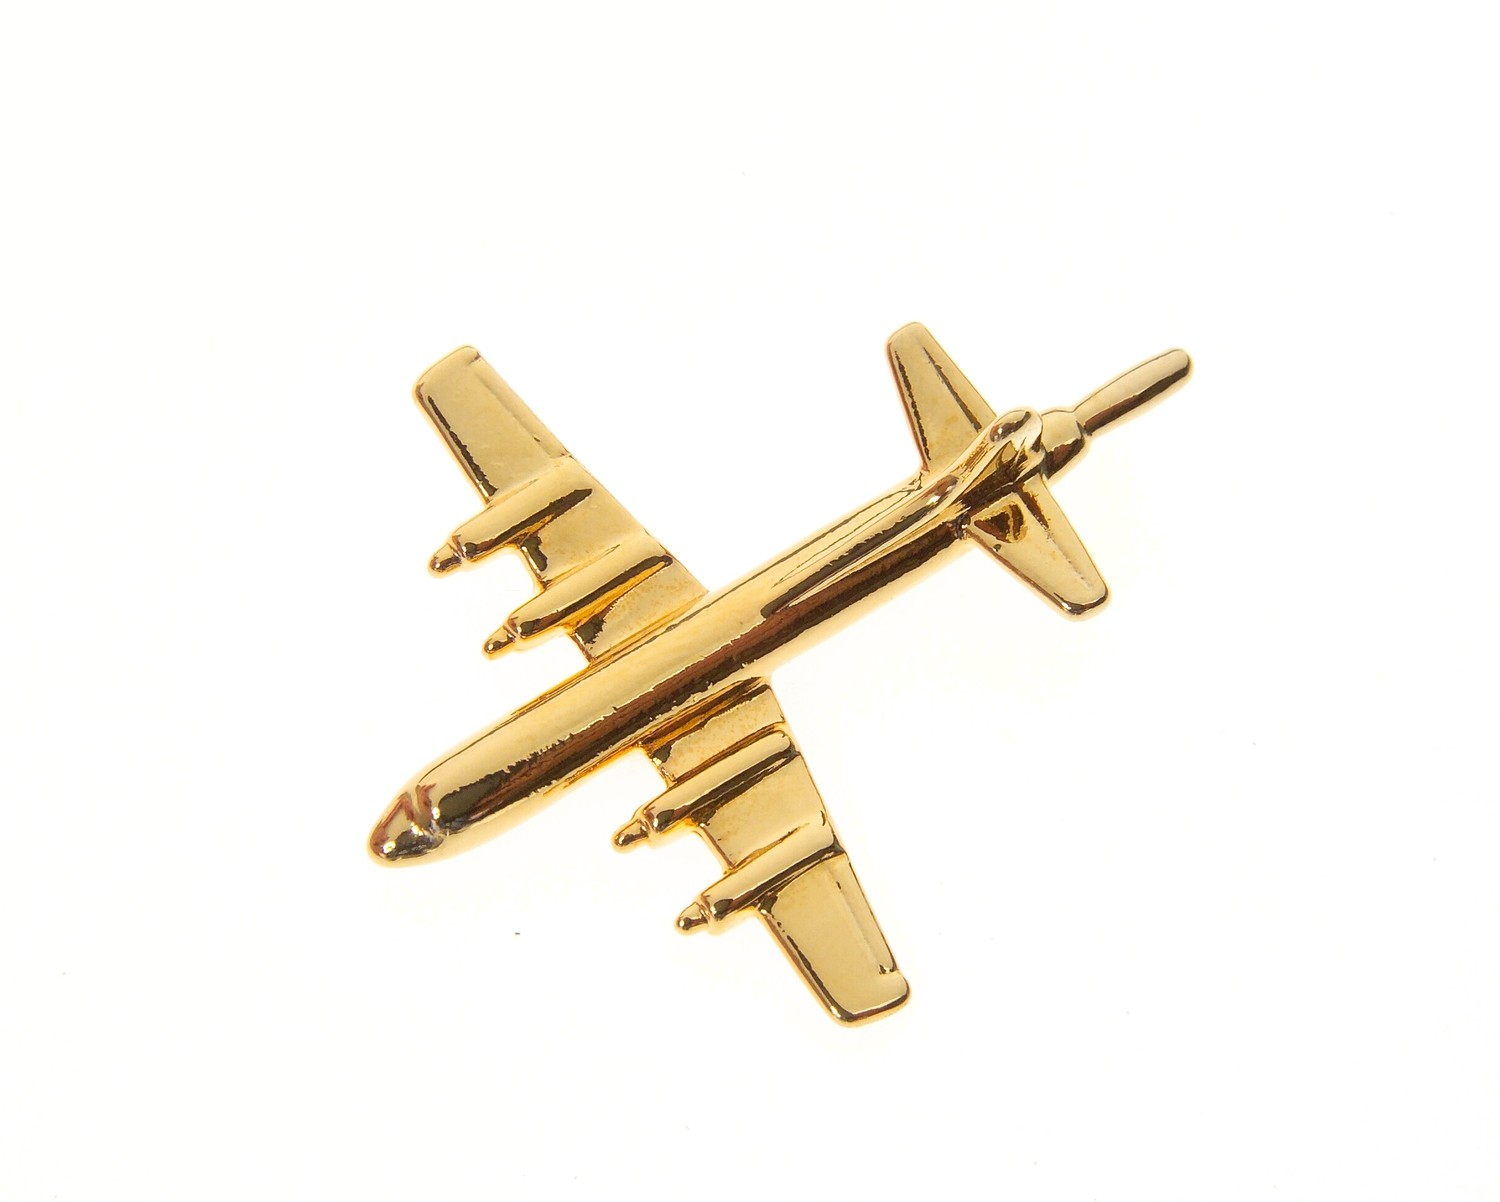 P3 Orion Gold Plated Tie / Lapel Pin